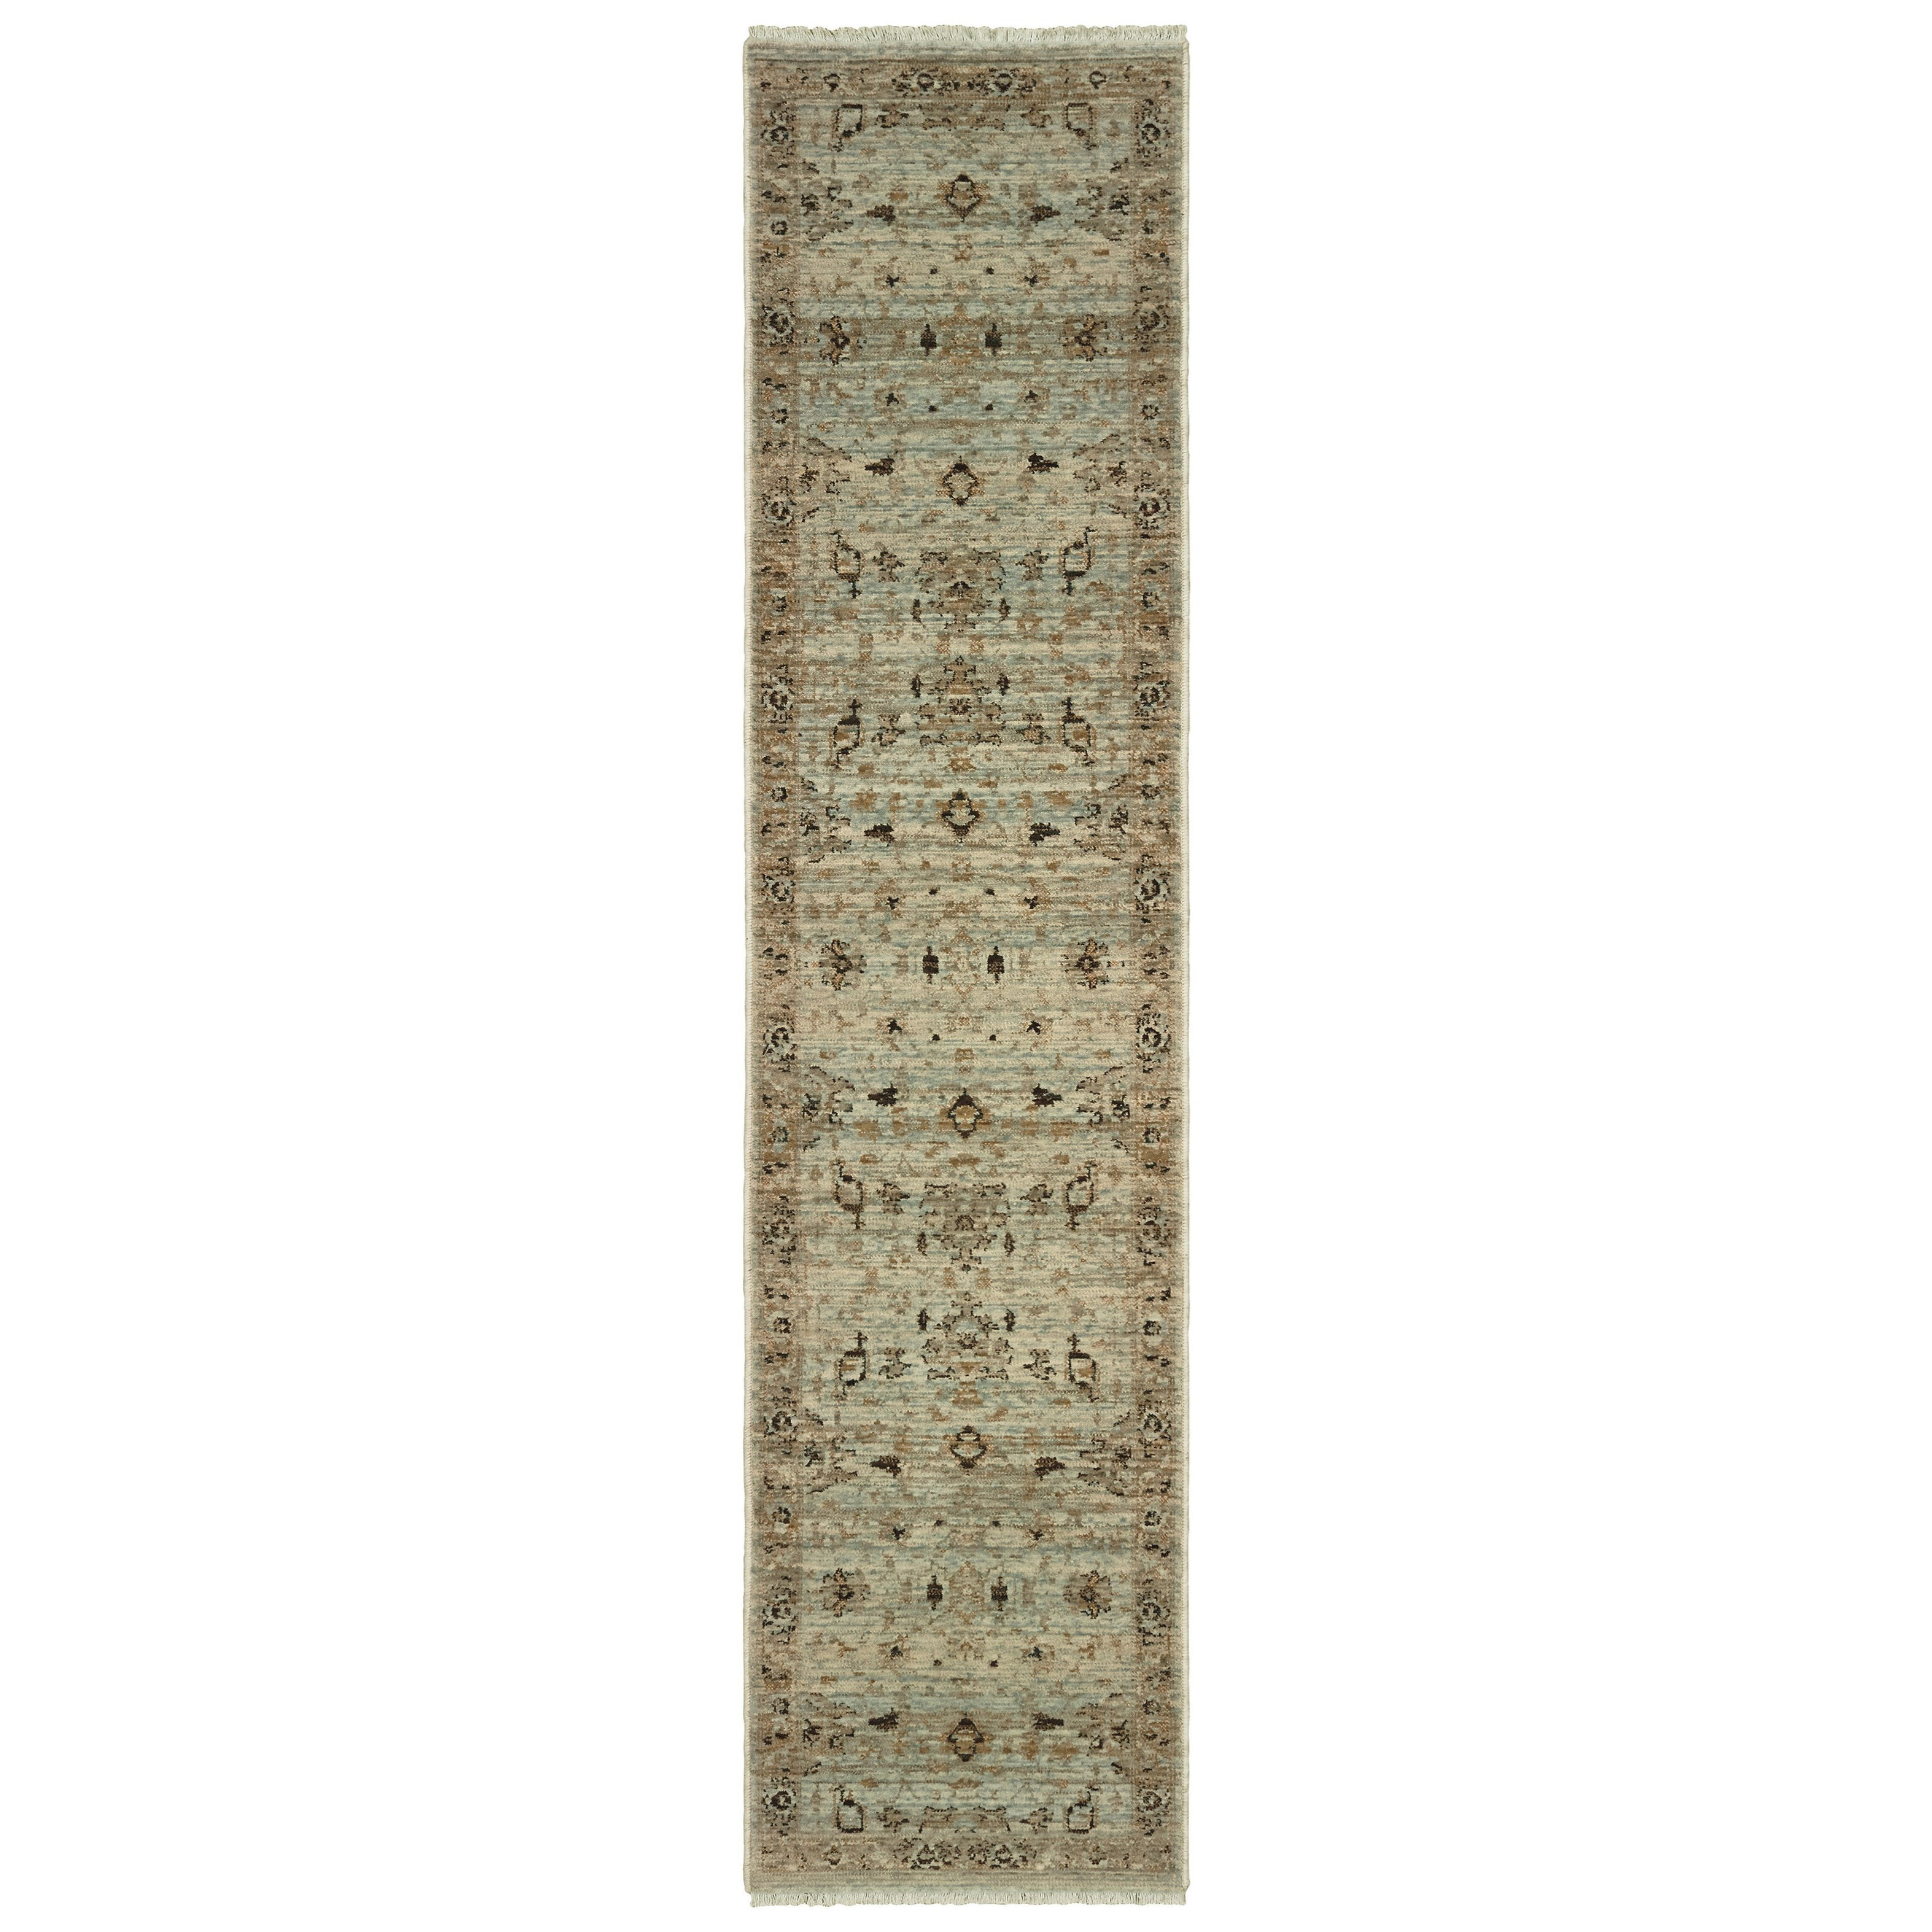 "Anatolia 2' 3"" X 10' Runner Rug by Oriental Weavers at Darvin Furniture"